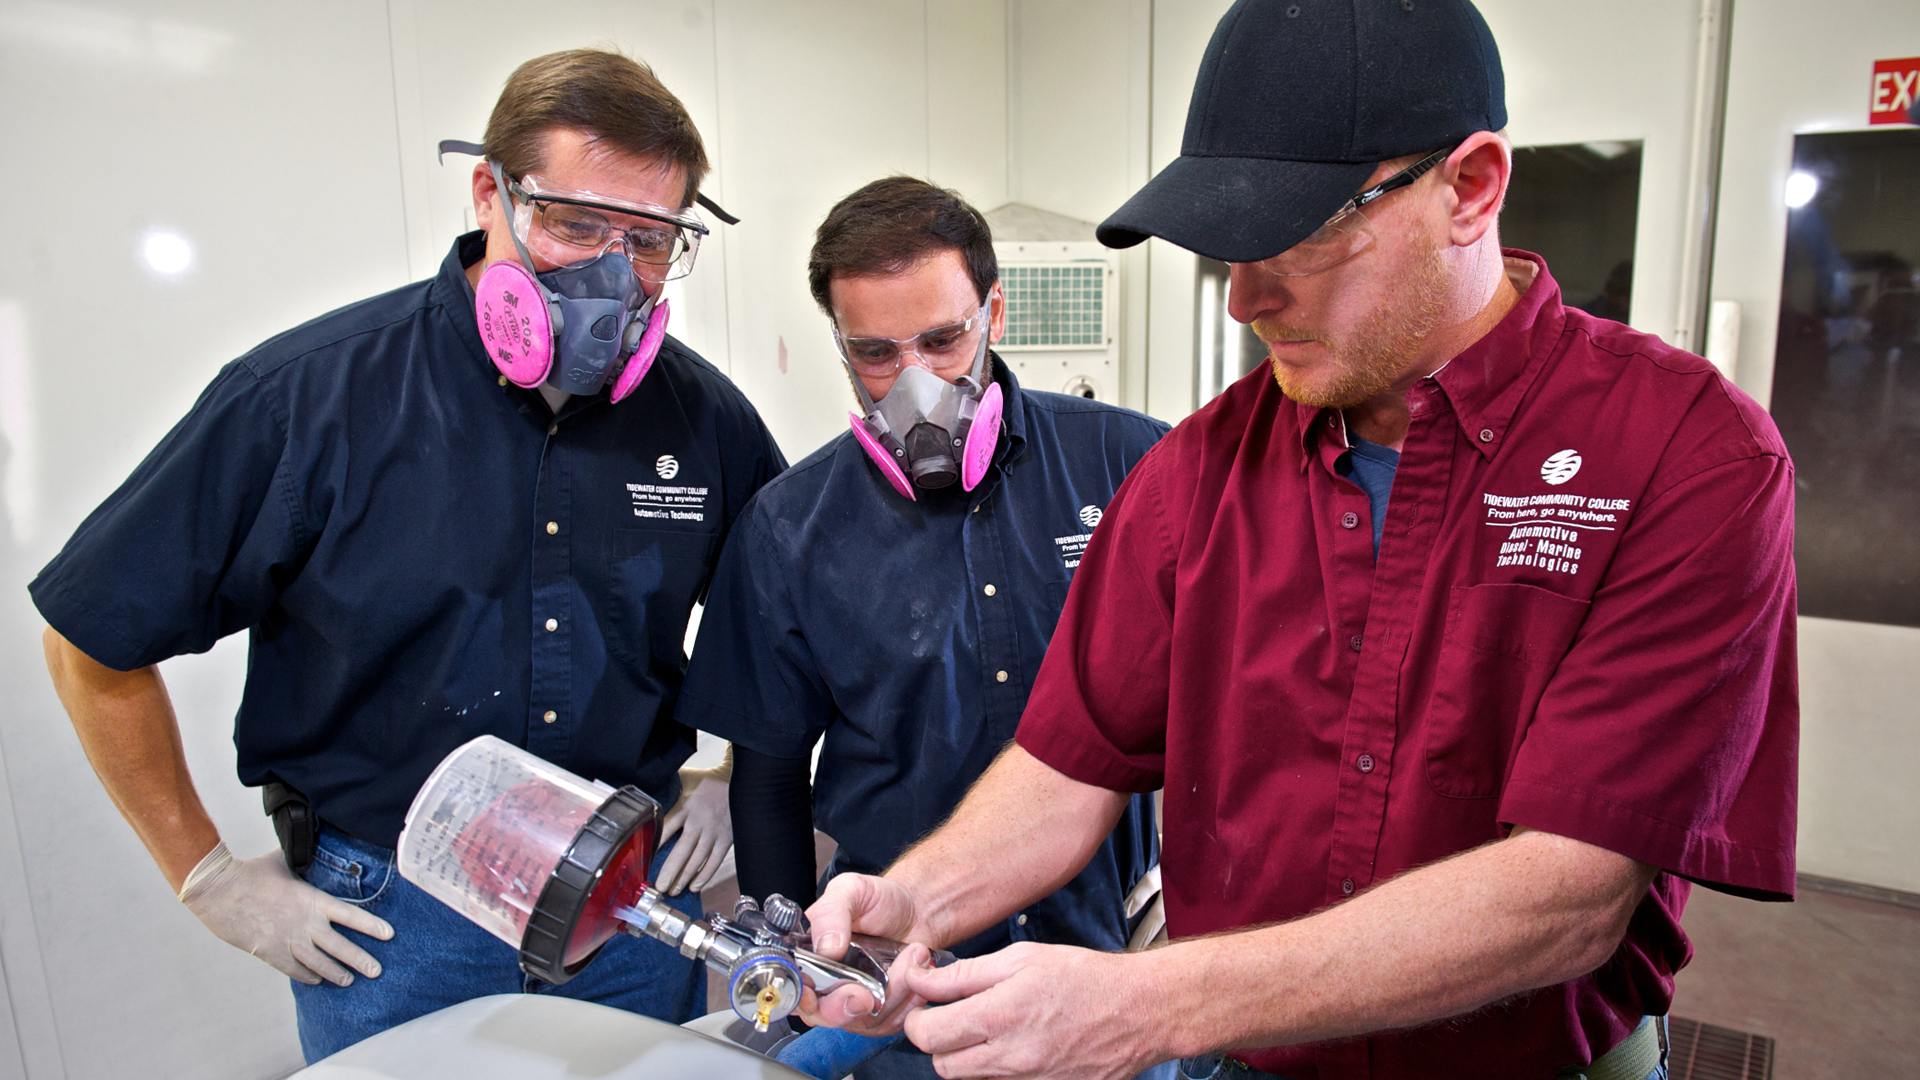 Two students and an instructor work with collision repair equipment